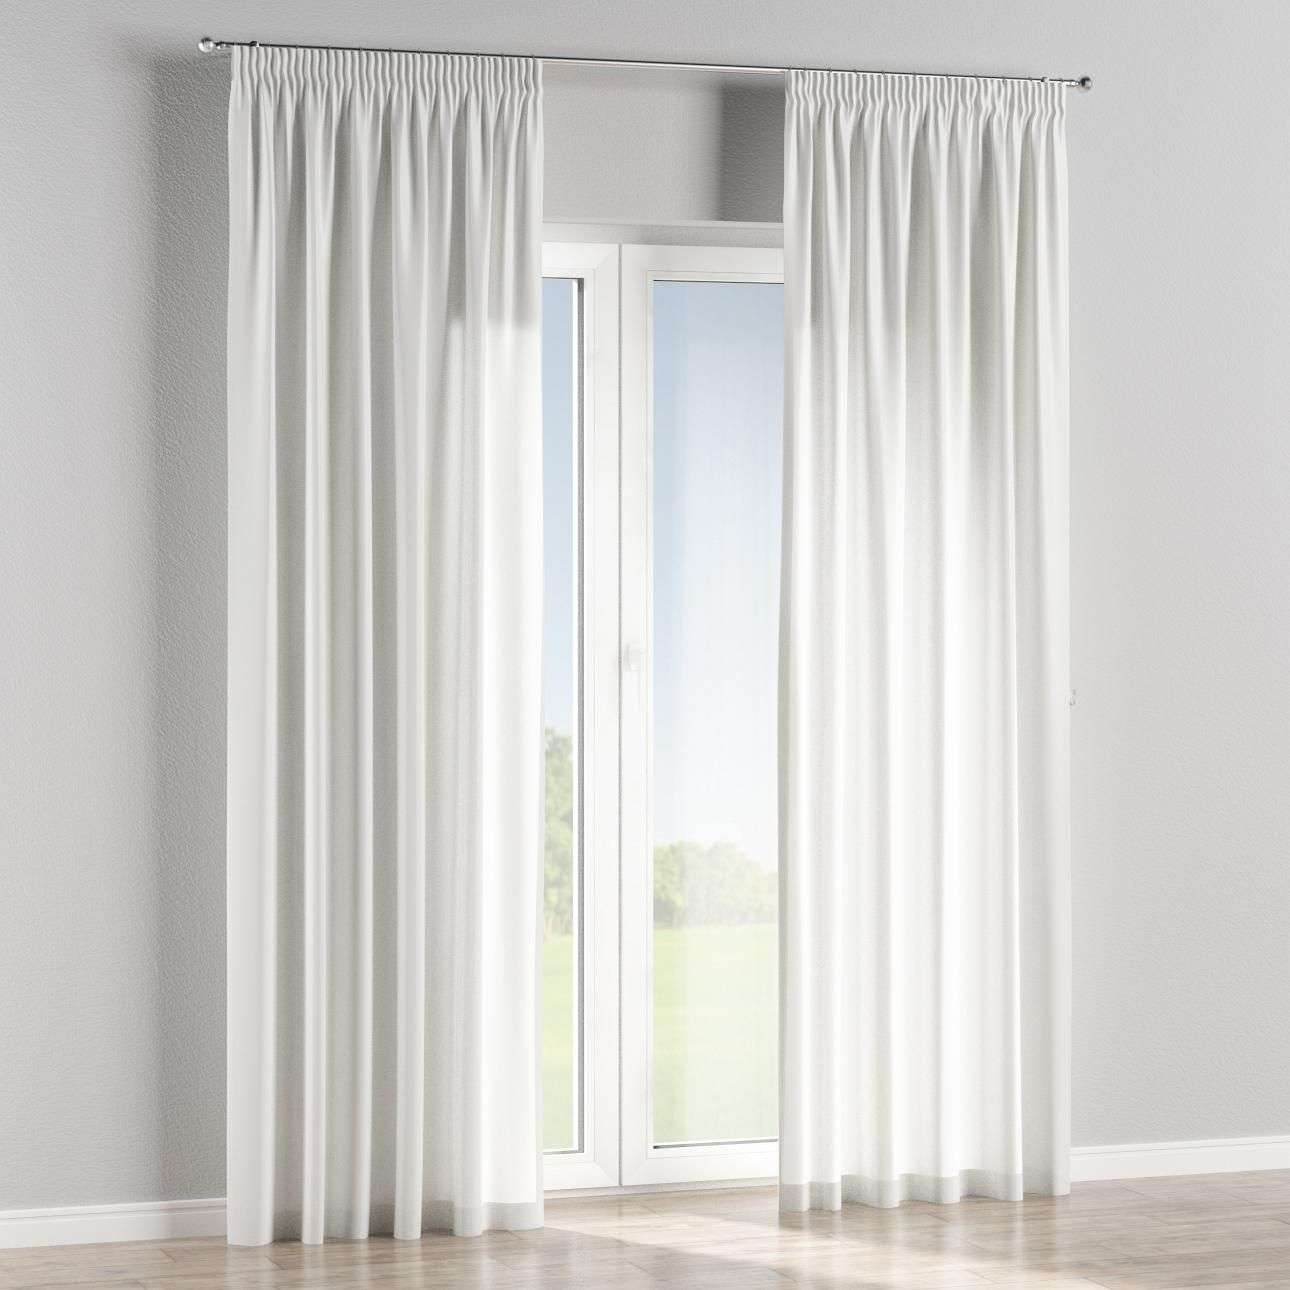 Pencil pleat curtains in collection Rustica, fabric: 138-12